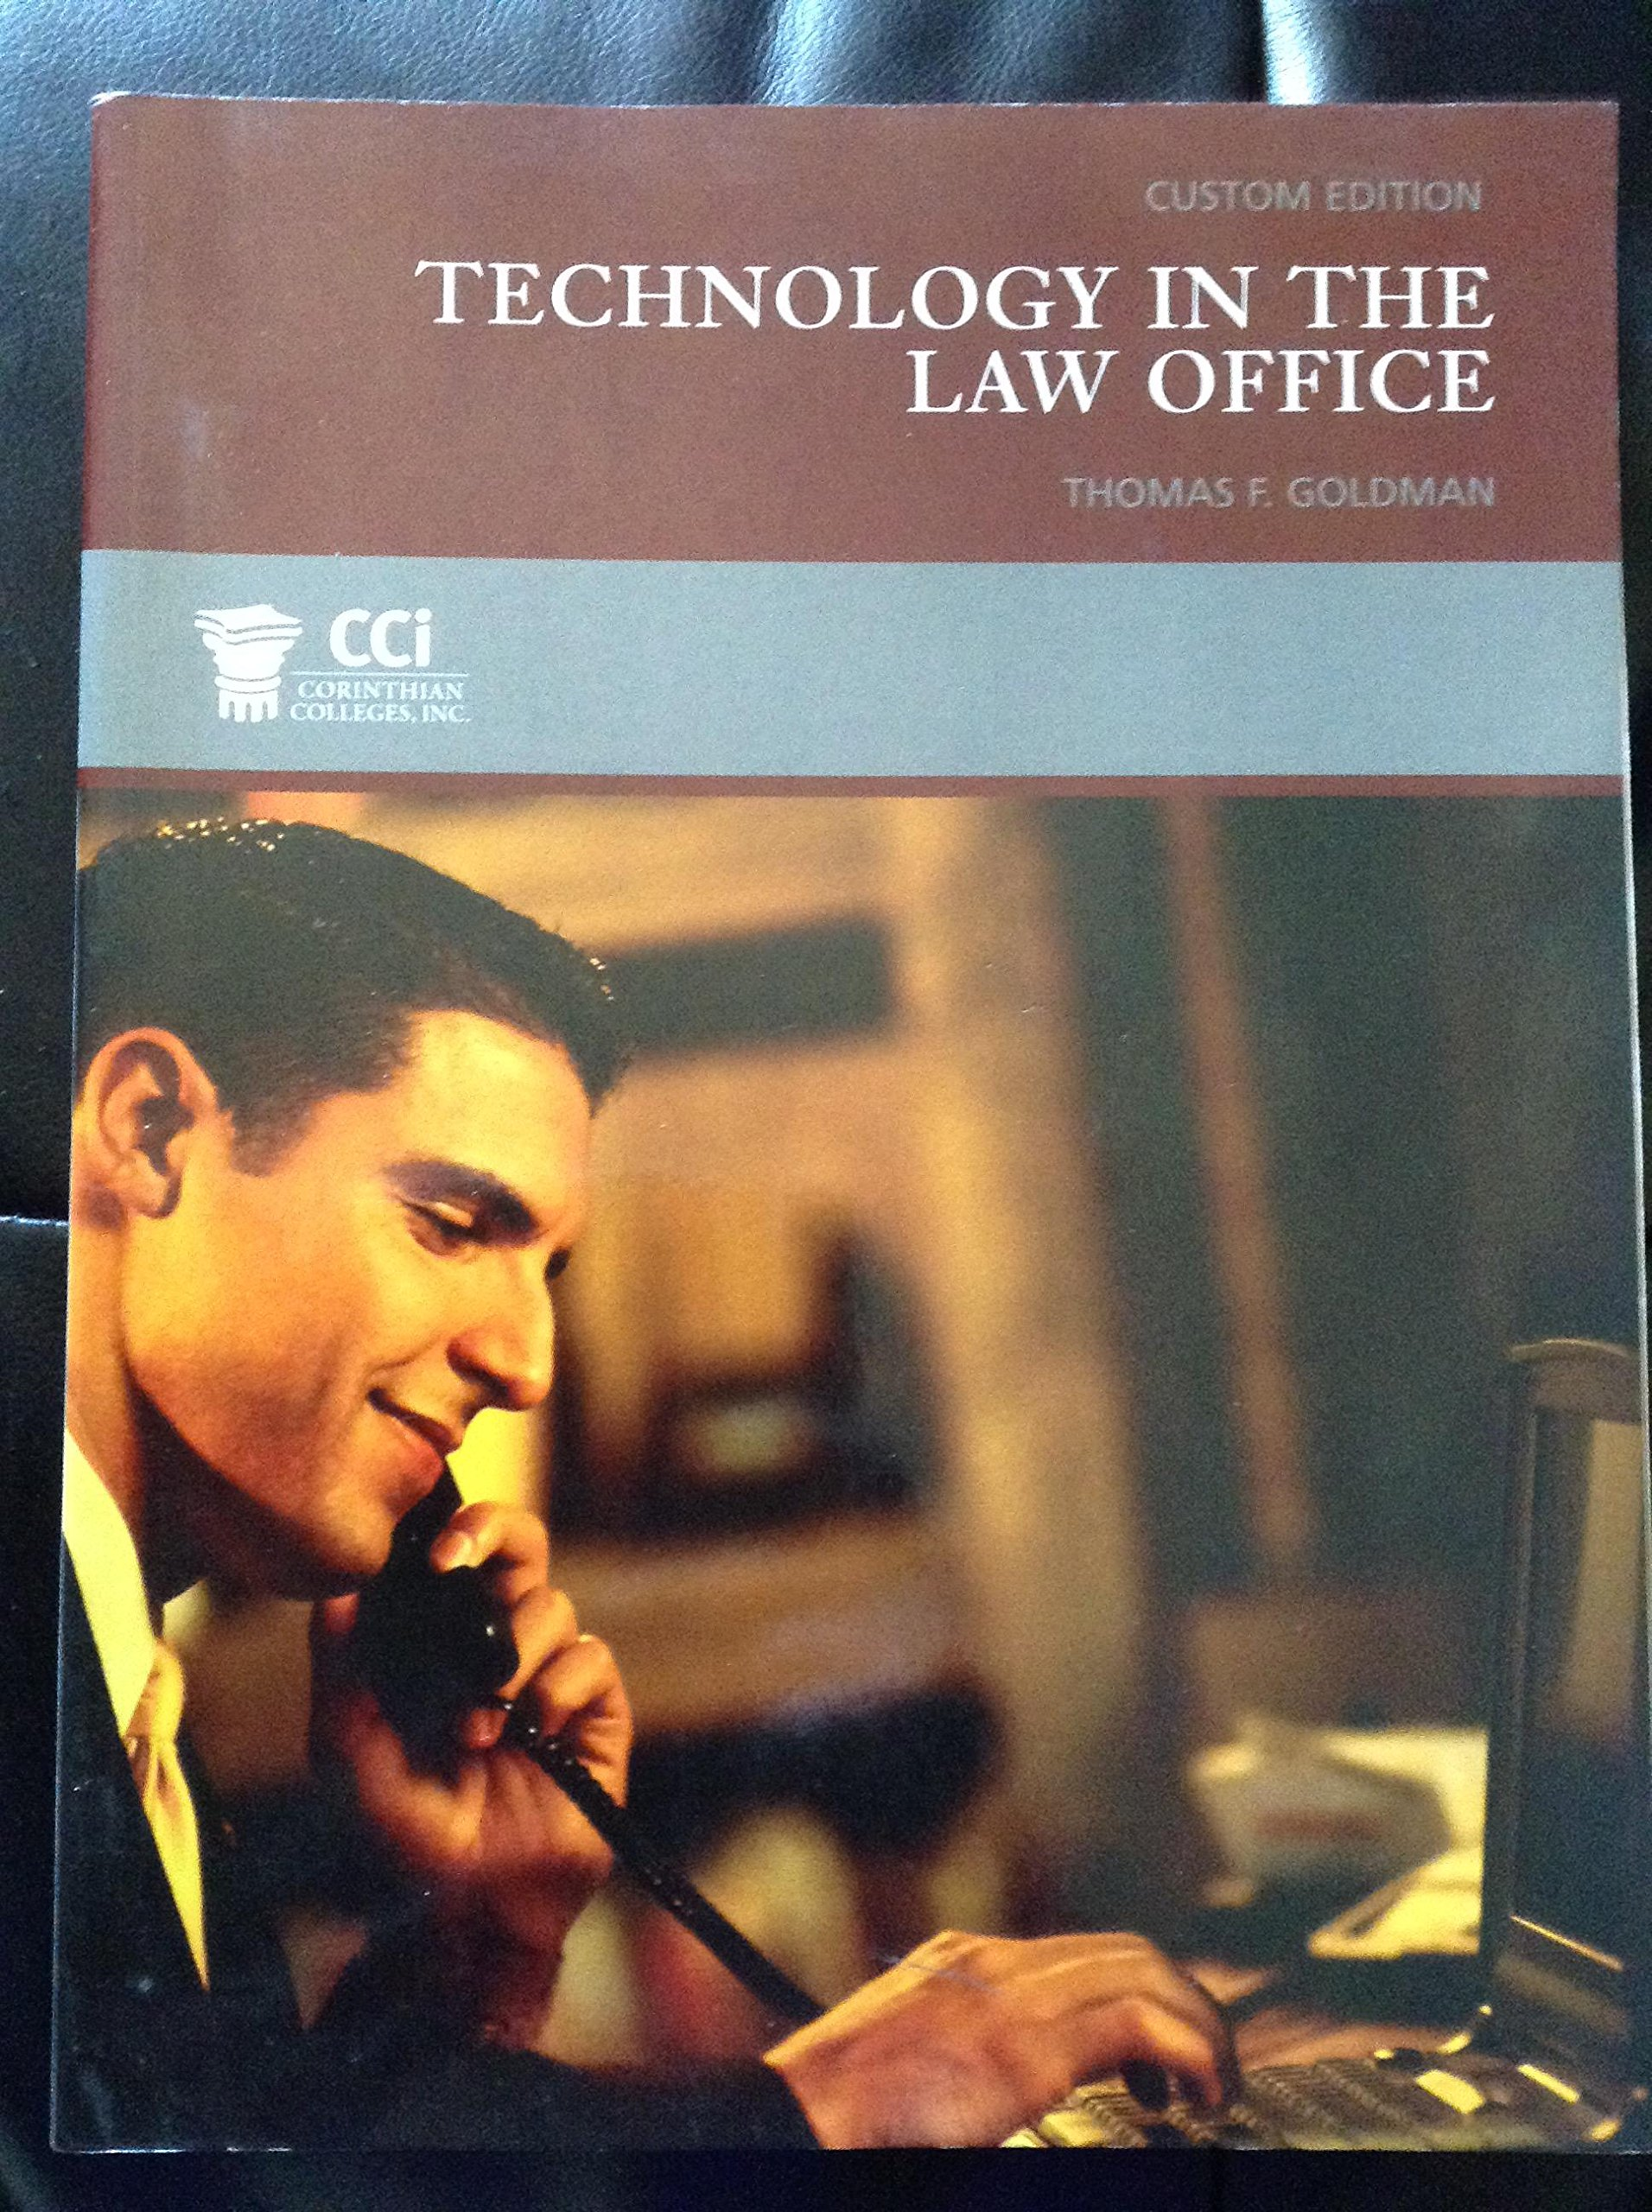 Technology In The Law Office Paperback – 2008 Pearson 0558037429 2141555